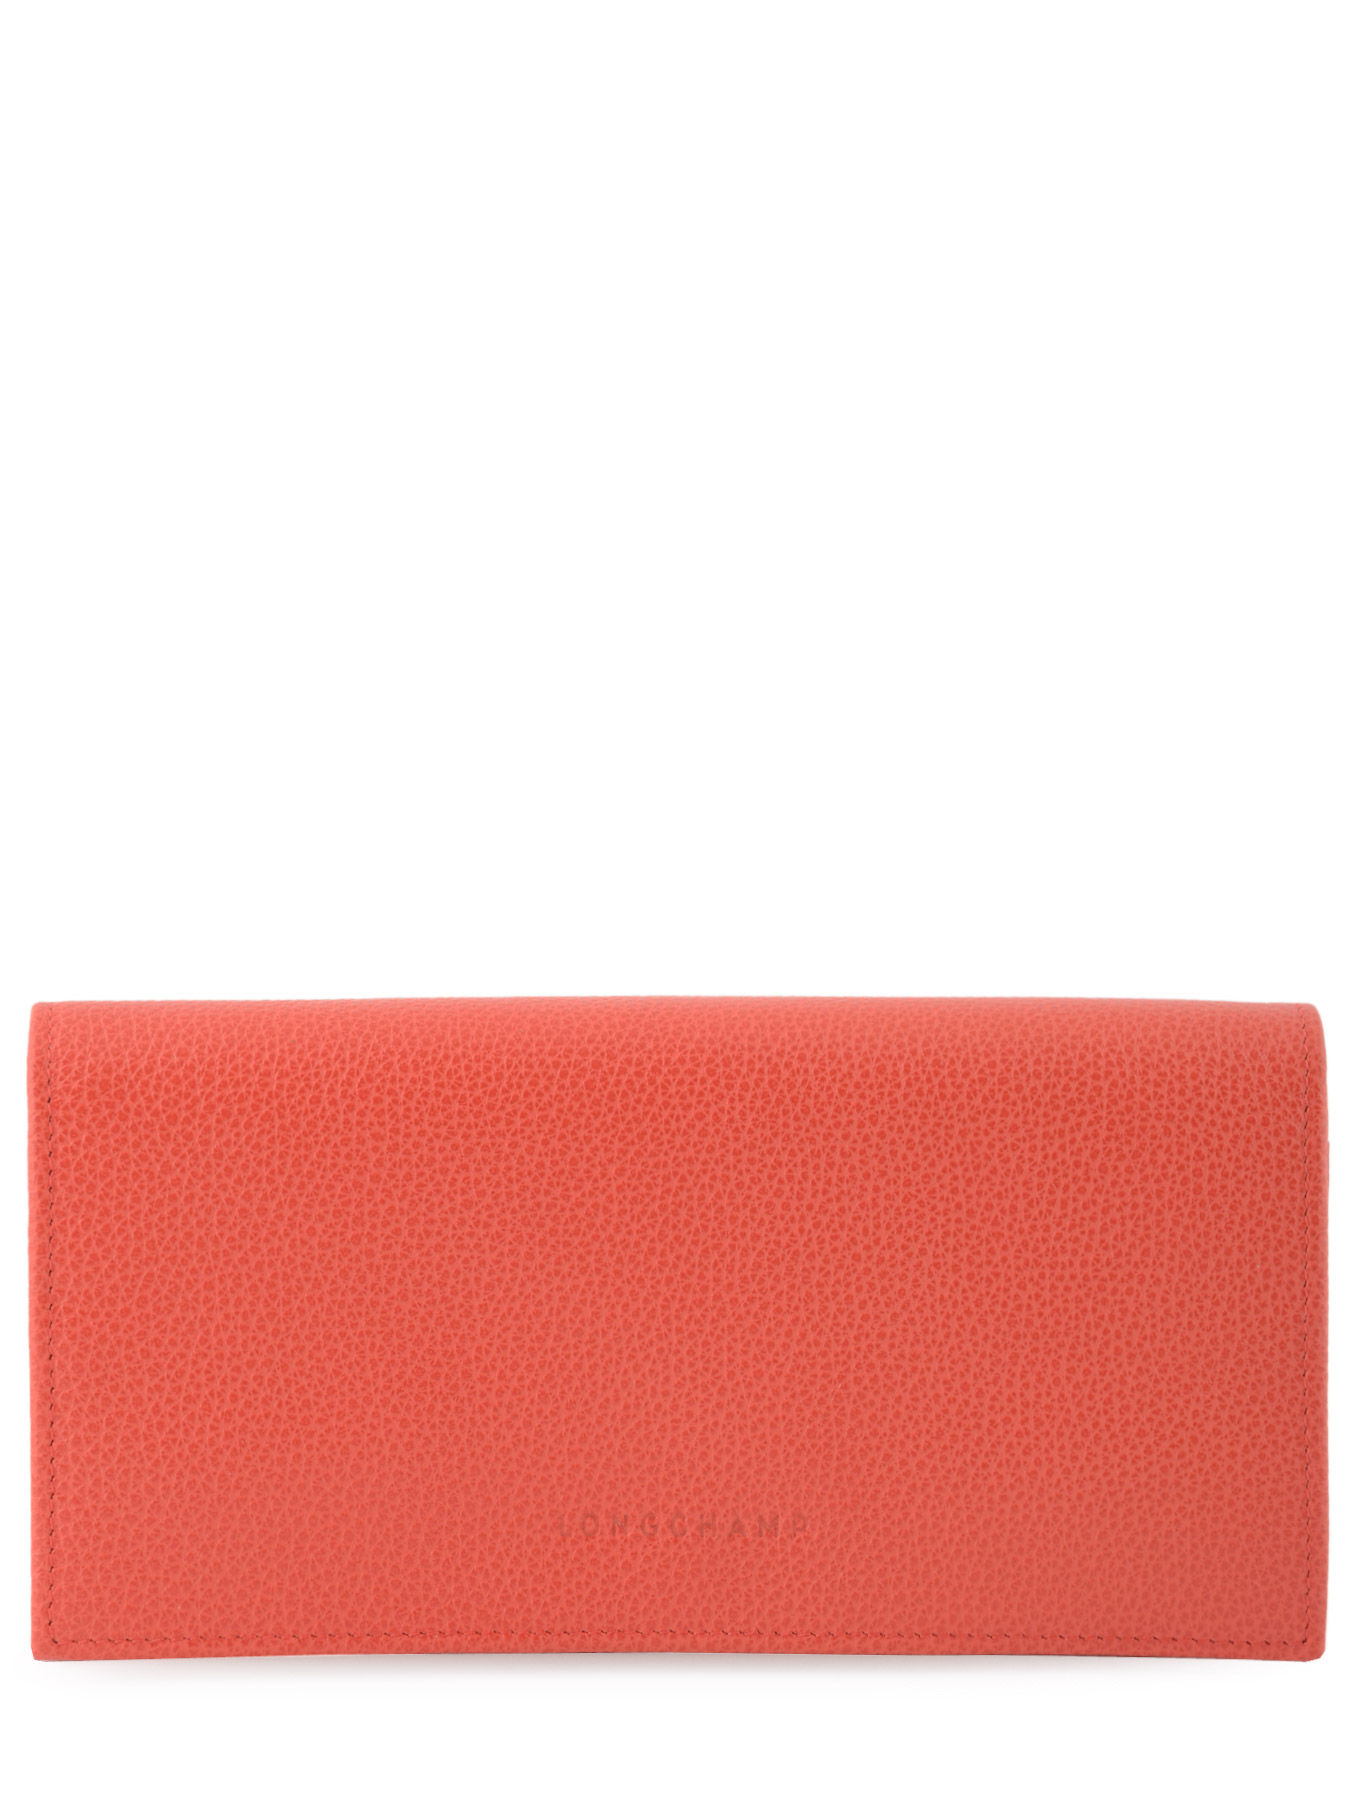 fc388ca34 Home / Longchamp / Ladies / Small Leather Goods / Wallet · Longchamp Wallet  Pink; Longchamp Wallet Pink ...